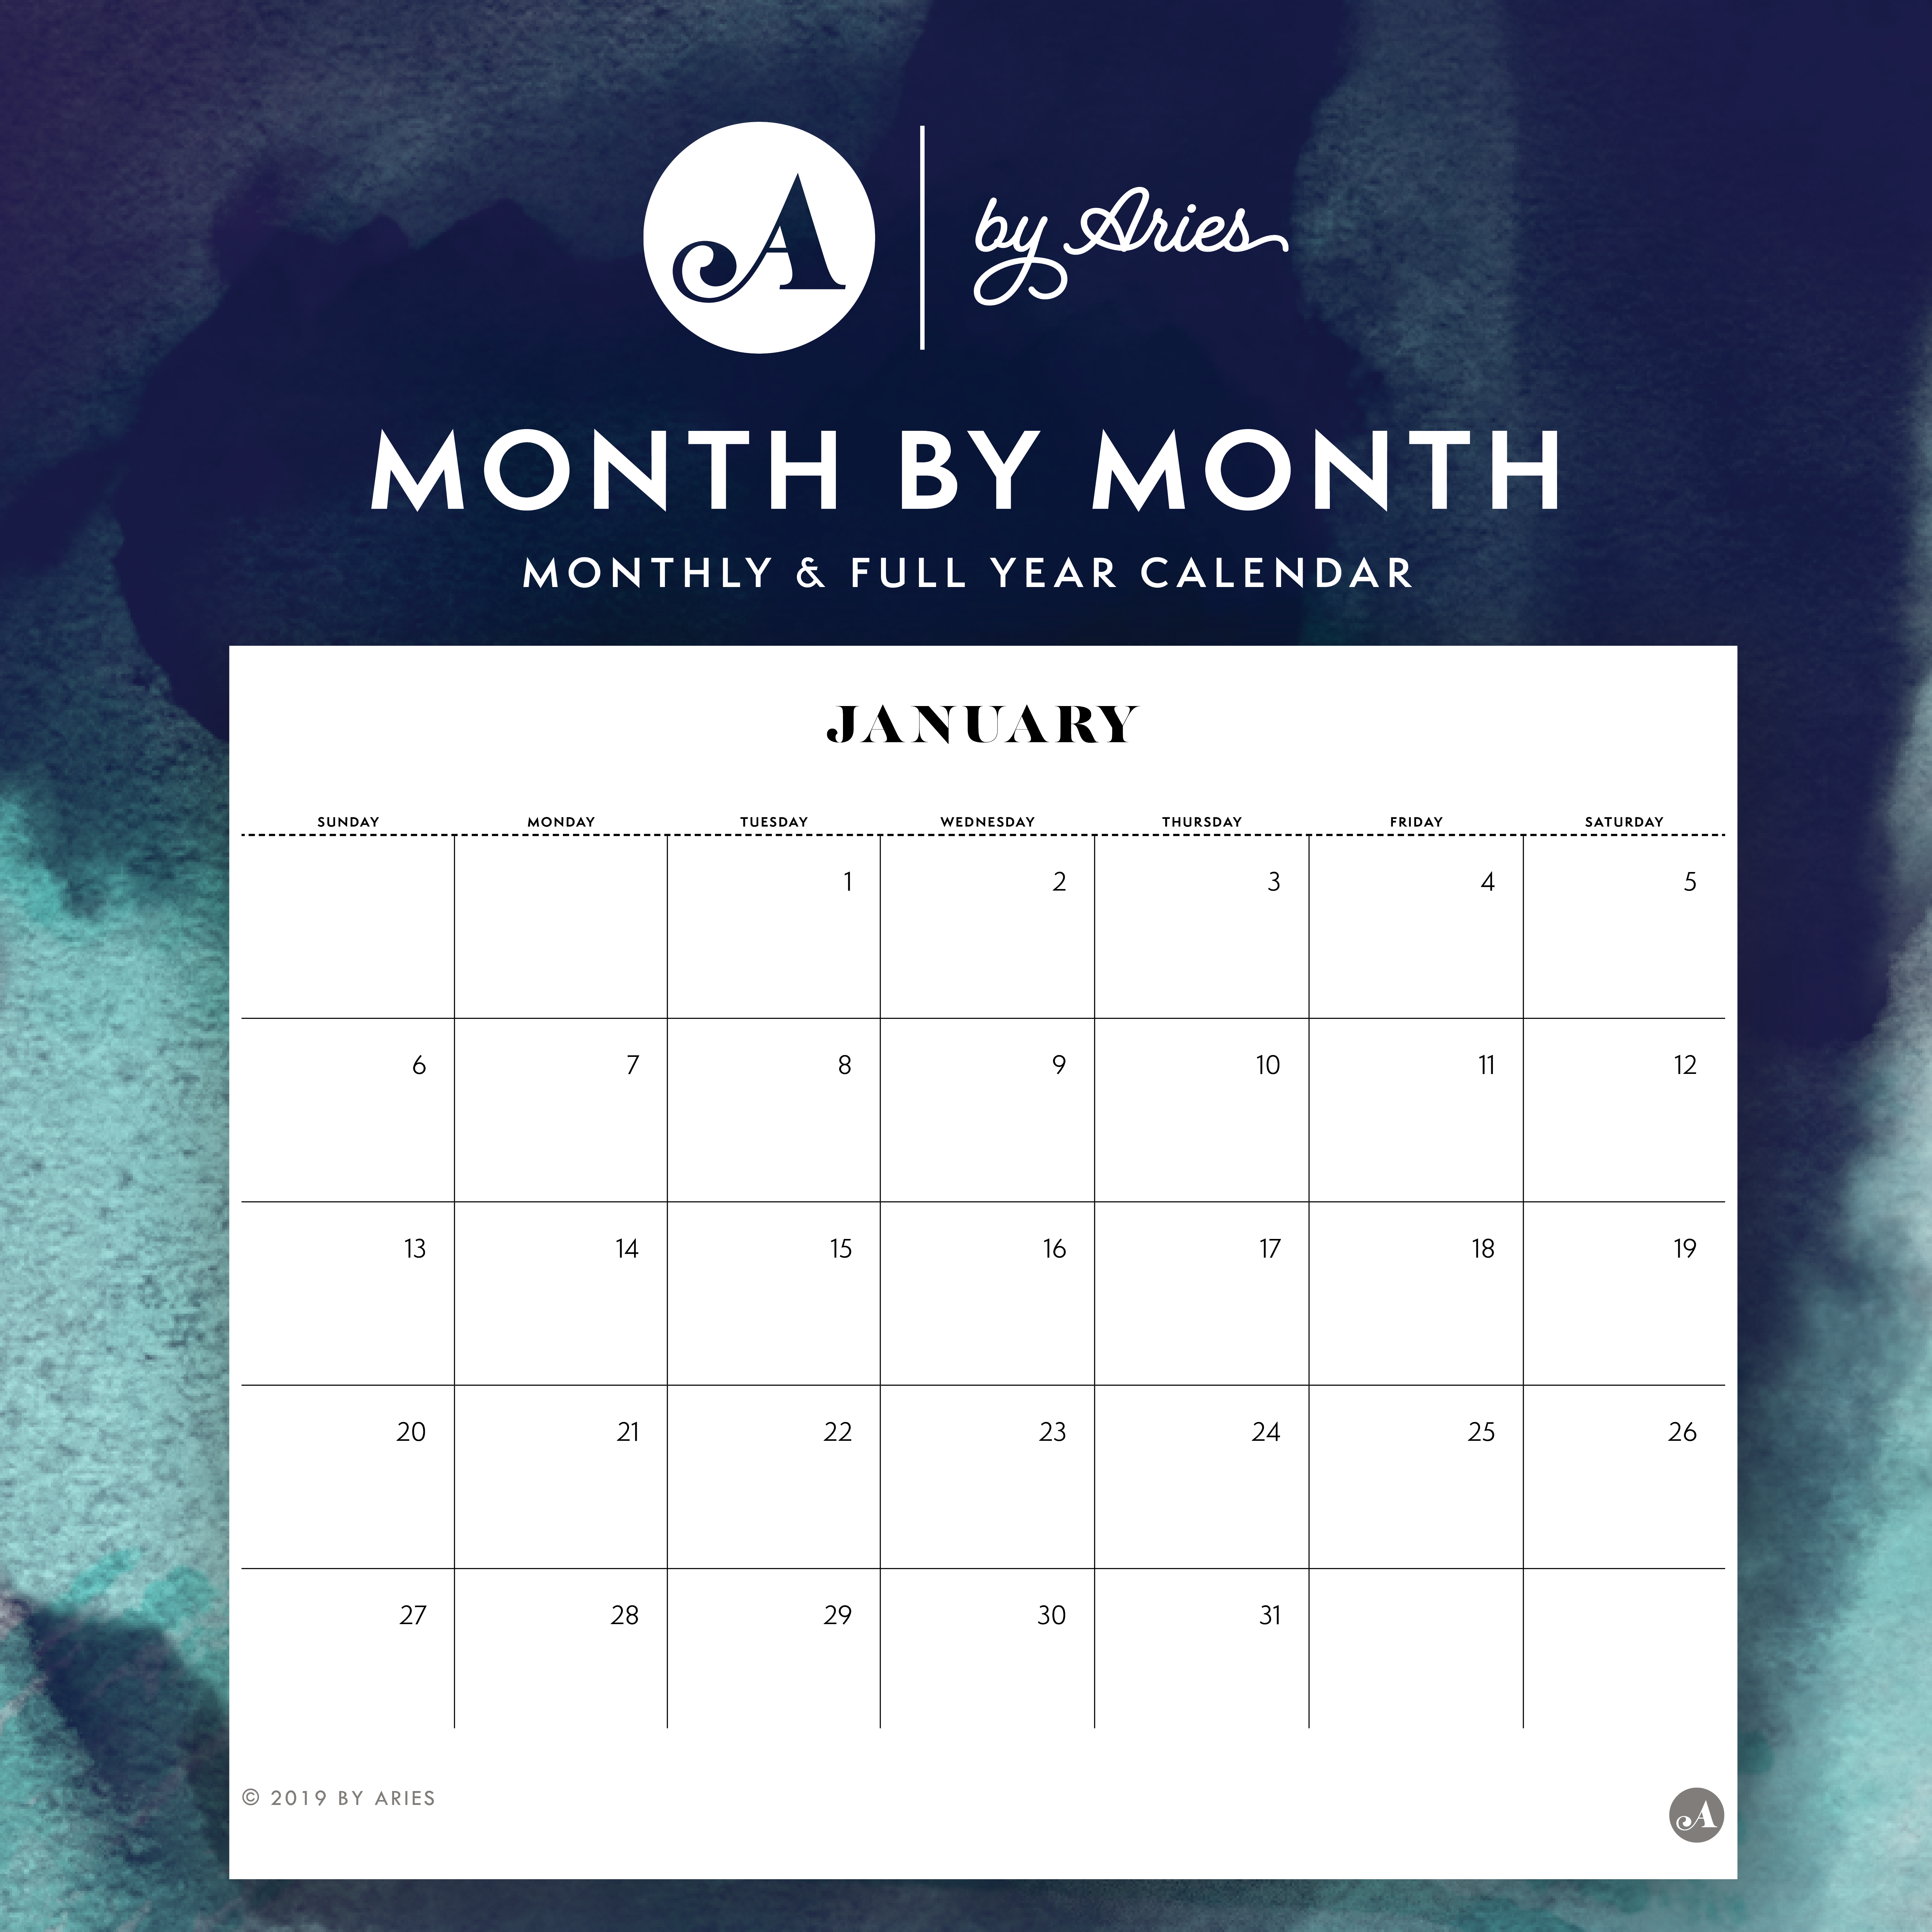 Yearly & Monthly Printable Calendars